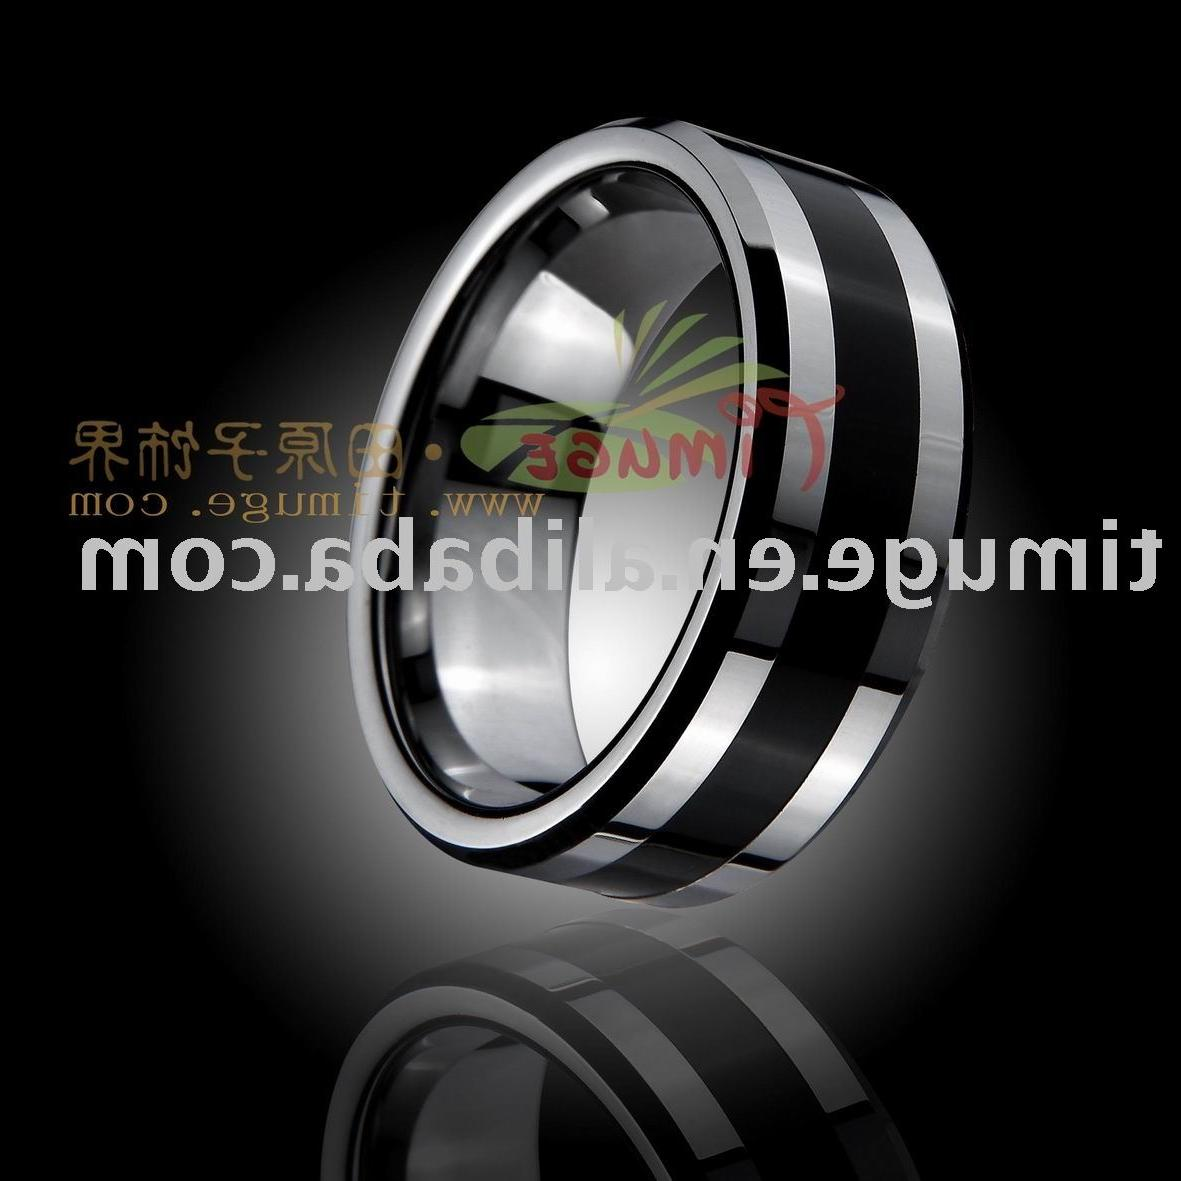 Tungsten Rings, fingle rings,wedding rings. Inquire now